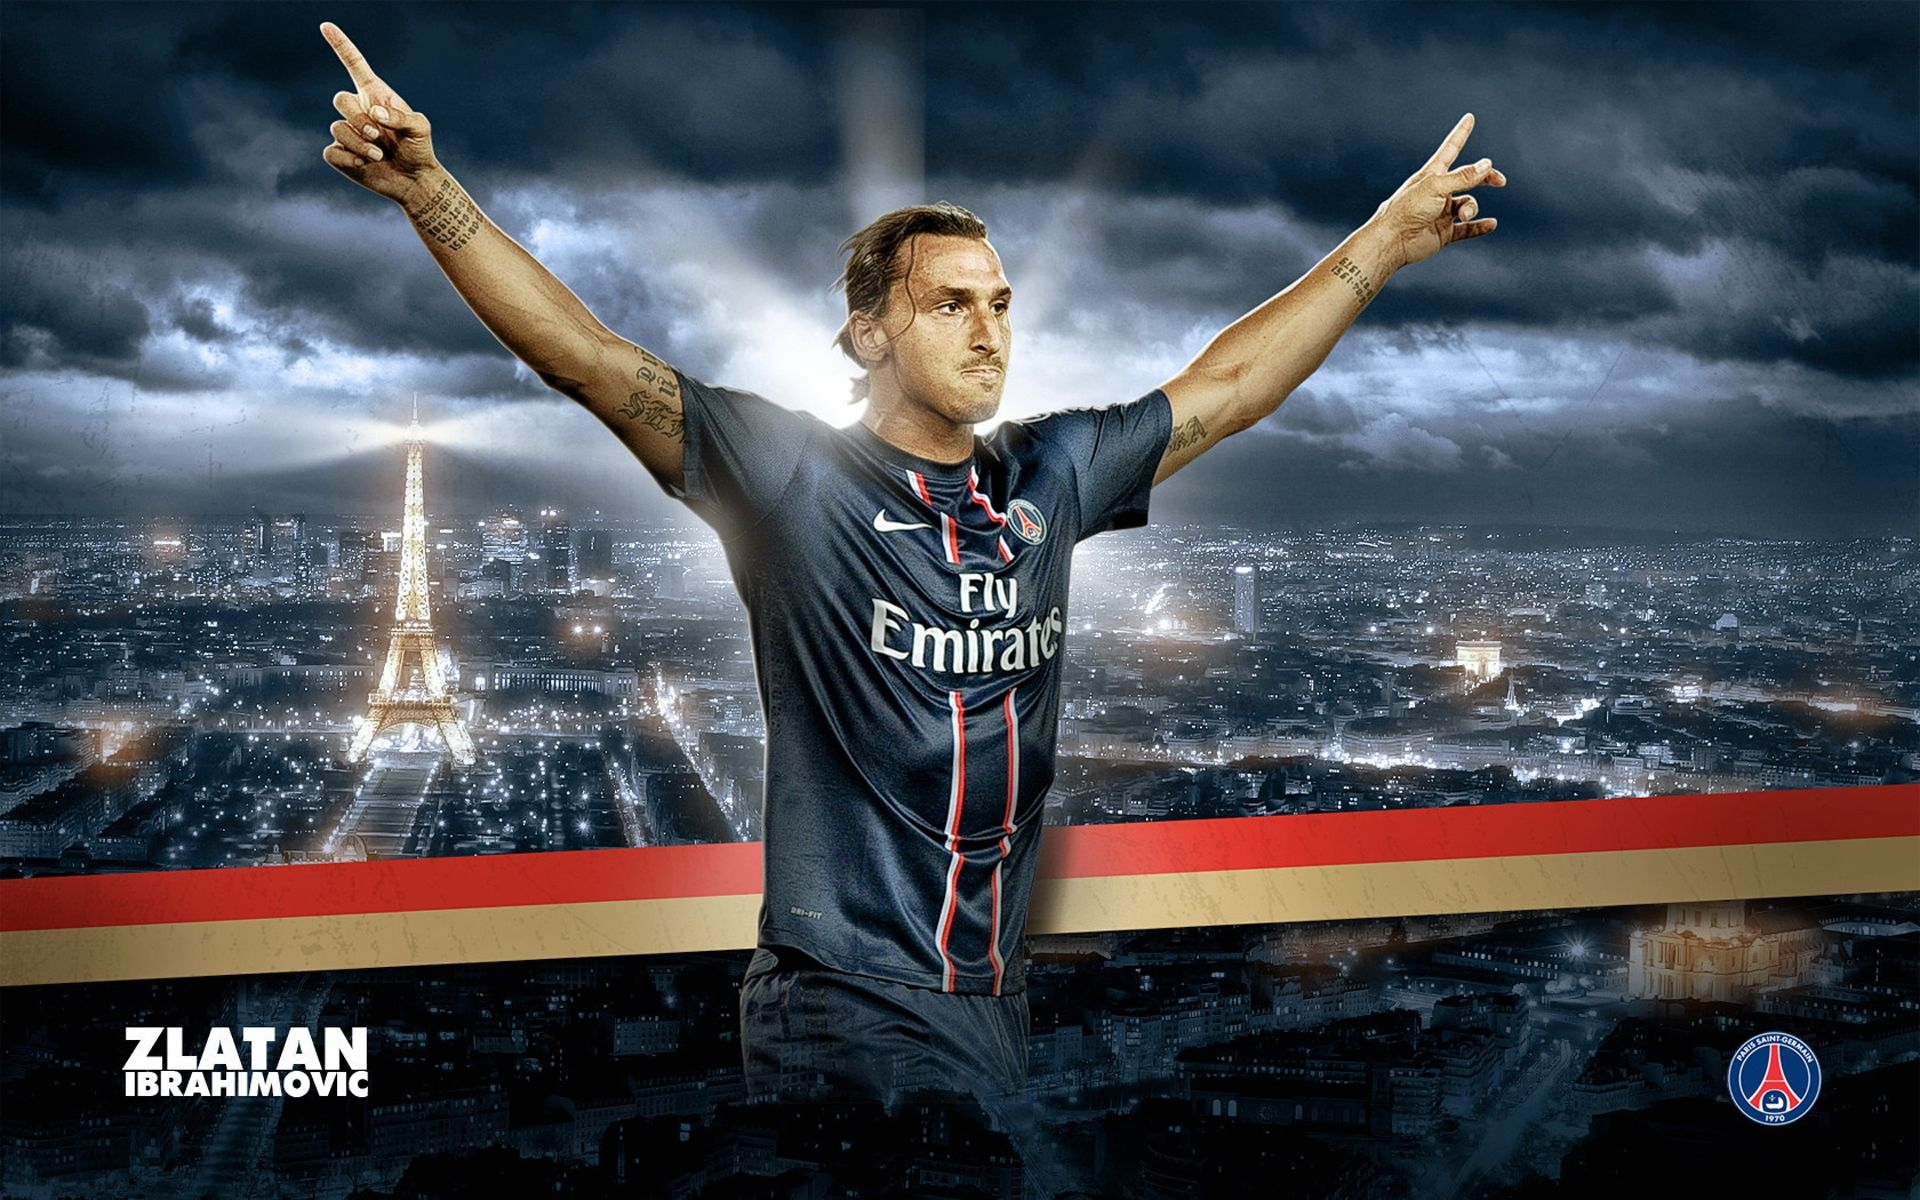 Zlatan Ibrahimovic PSG FC HD Wallpaper Free Download